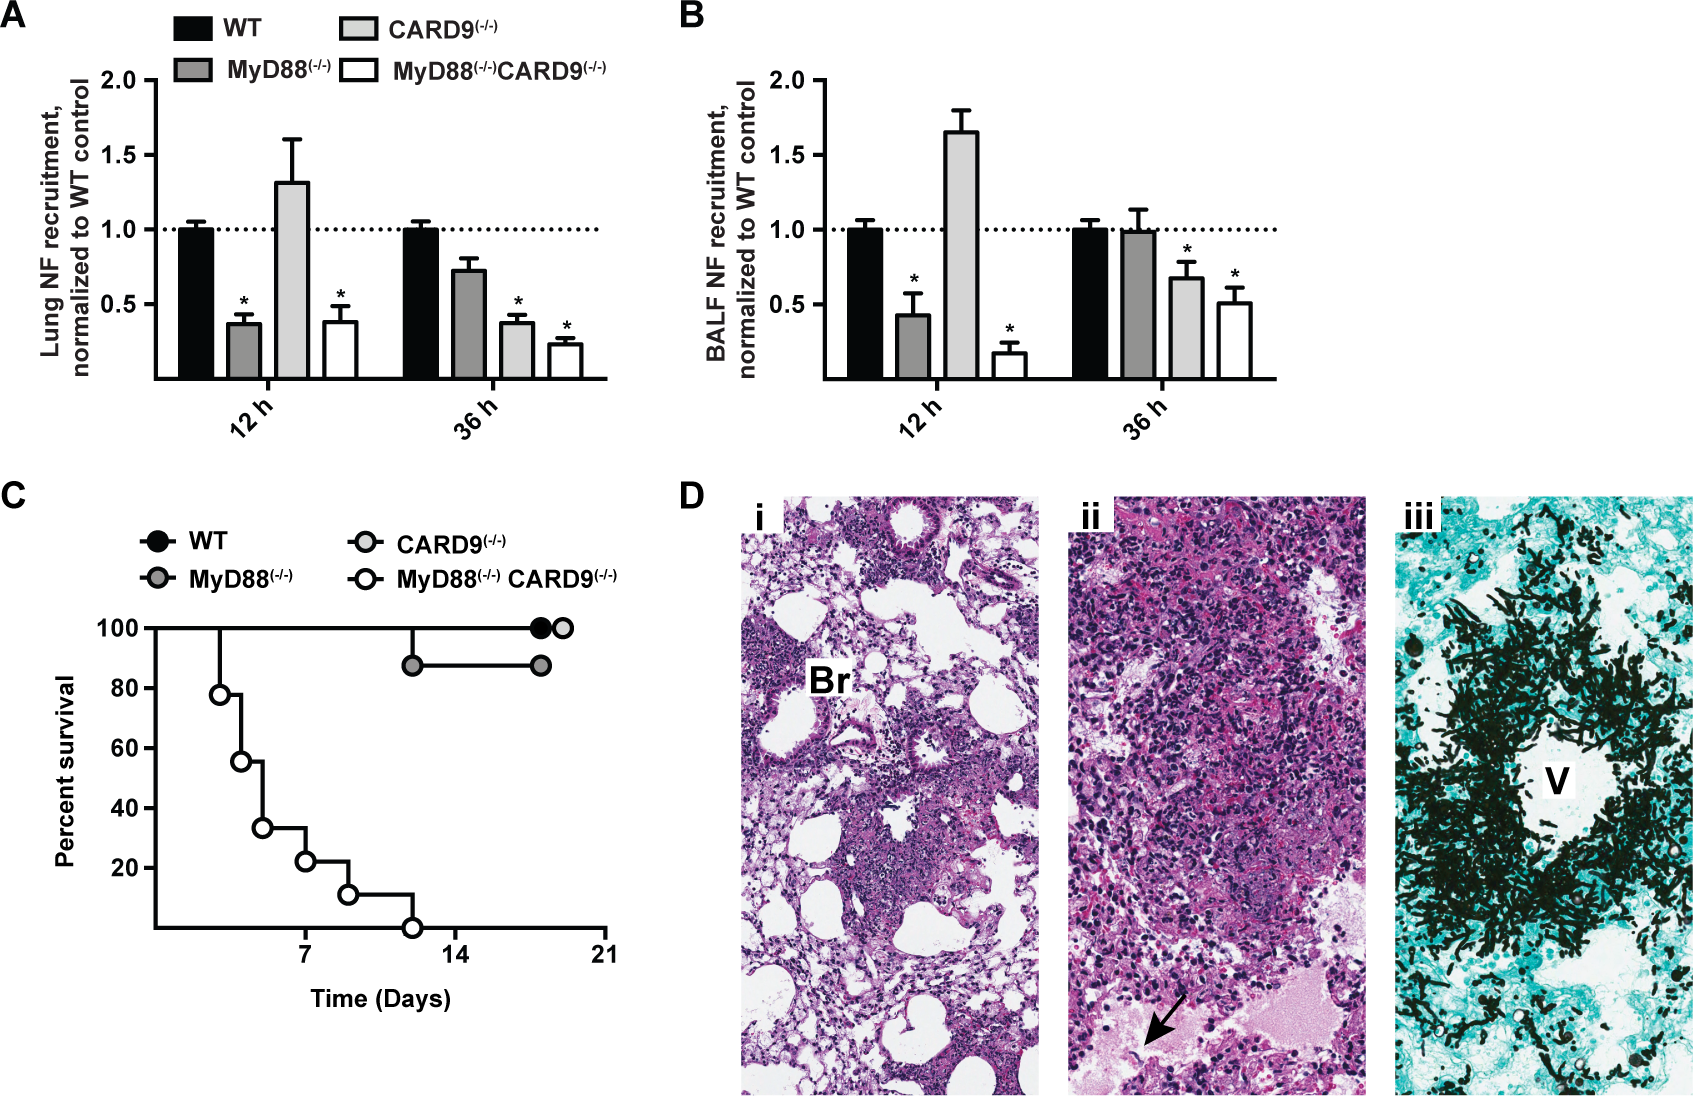 Effects of MyD88 and CARD9 are additive in murine defense against aspergillosis.